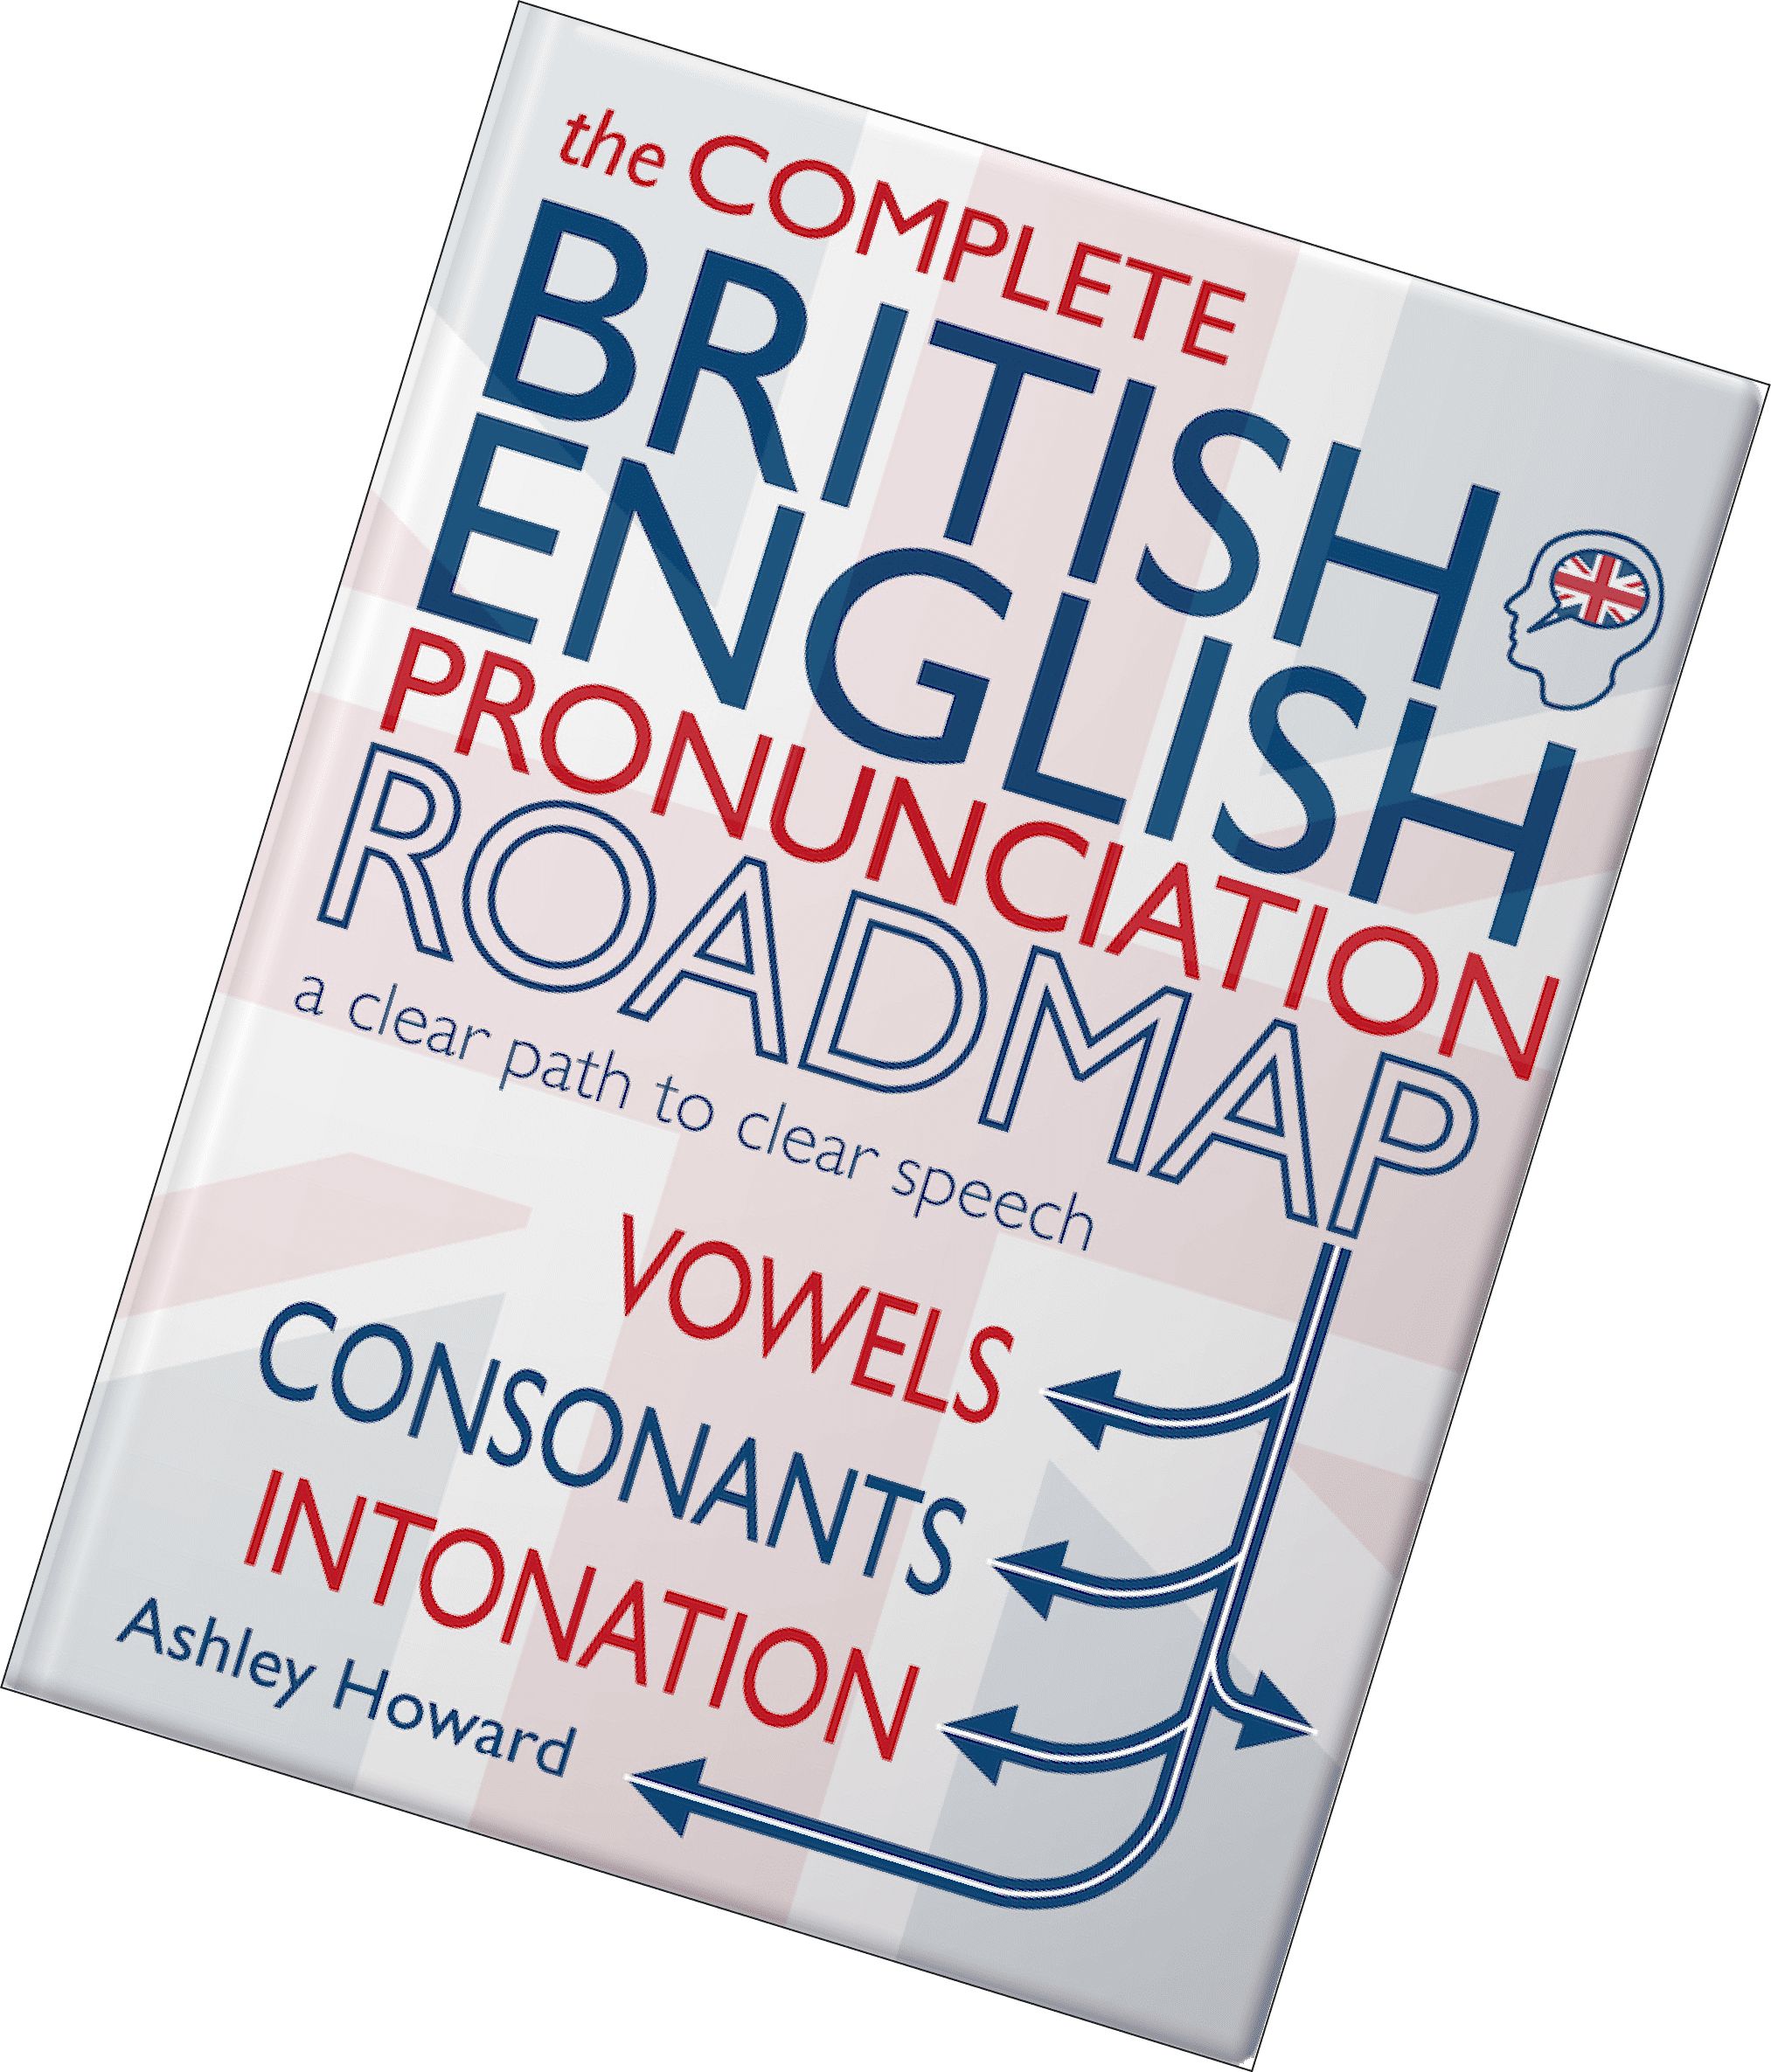 British English Pronunciation Roadmap